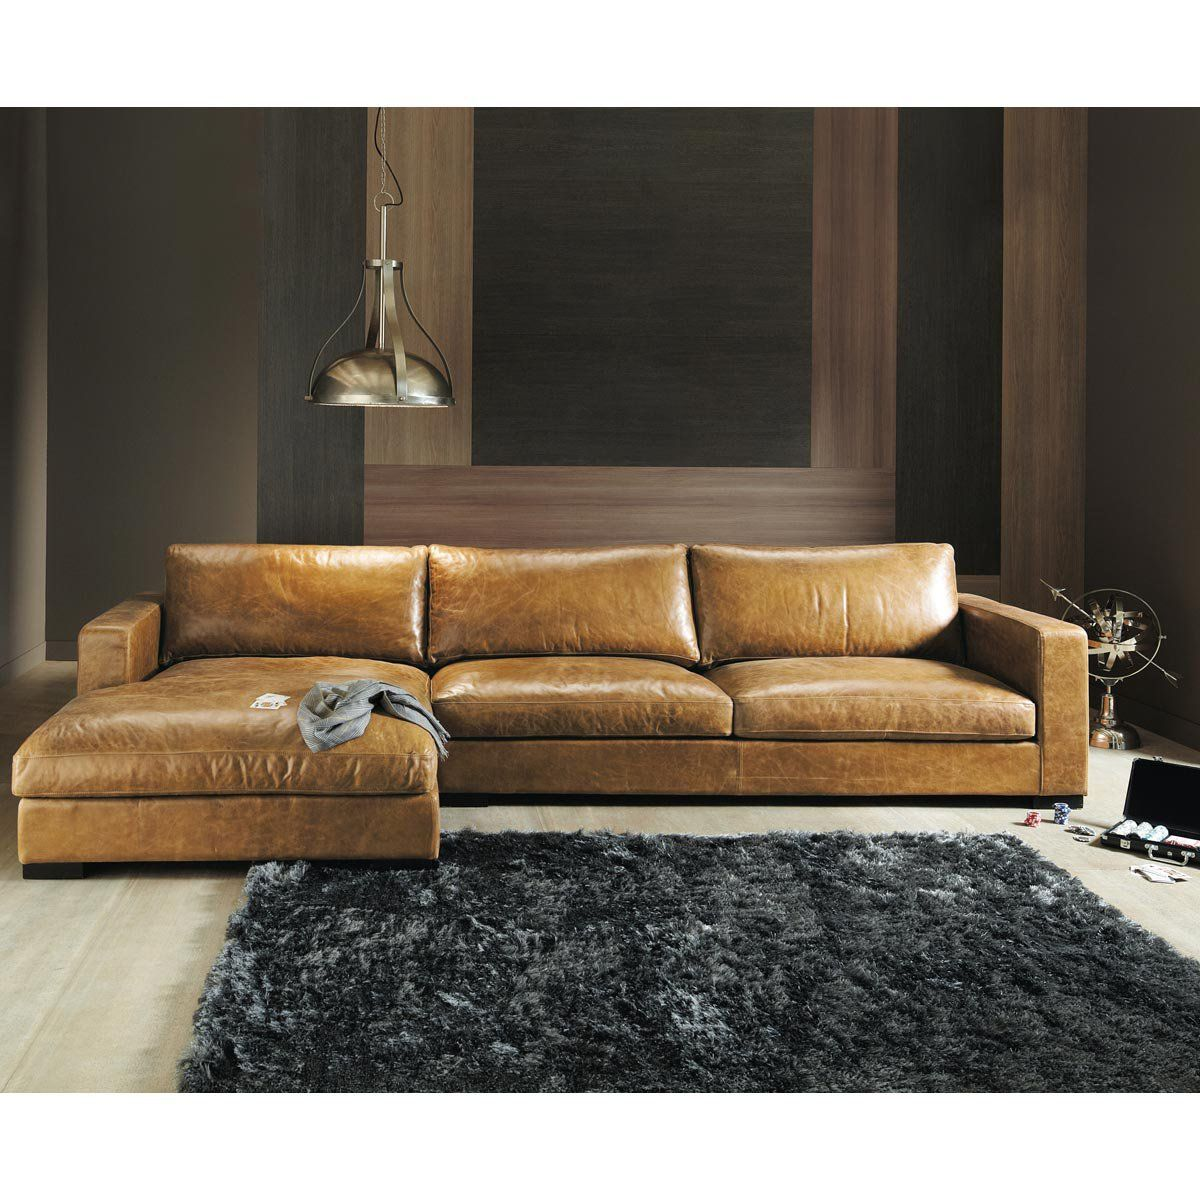 vintage brown leather sectional corner sofa seats 3 4 lincoln call me home pinterest. Black Bedroom Furniture Sets. Home Design Ideas